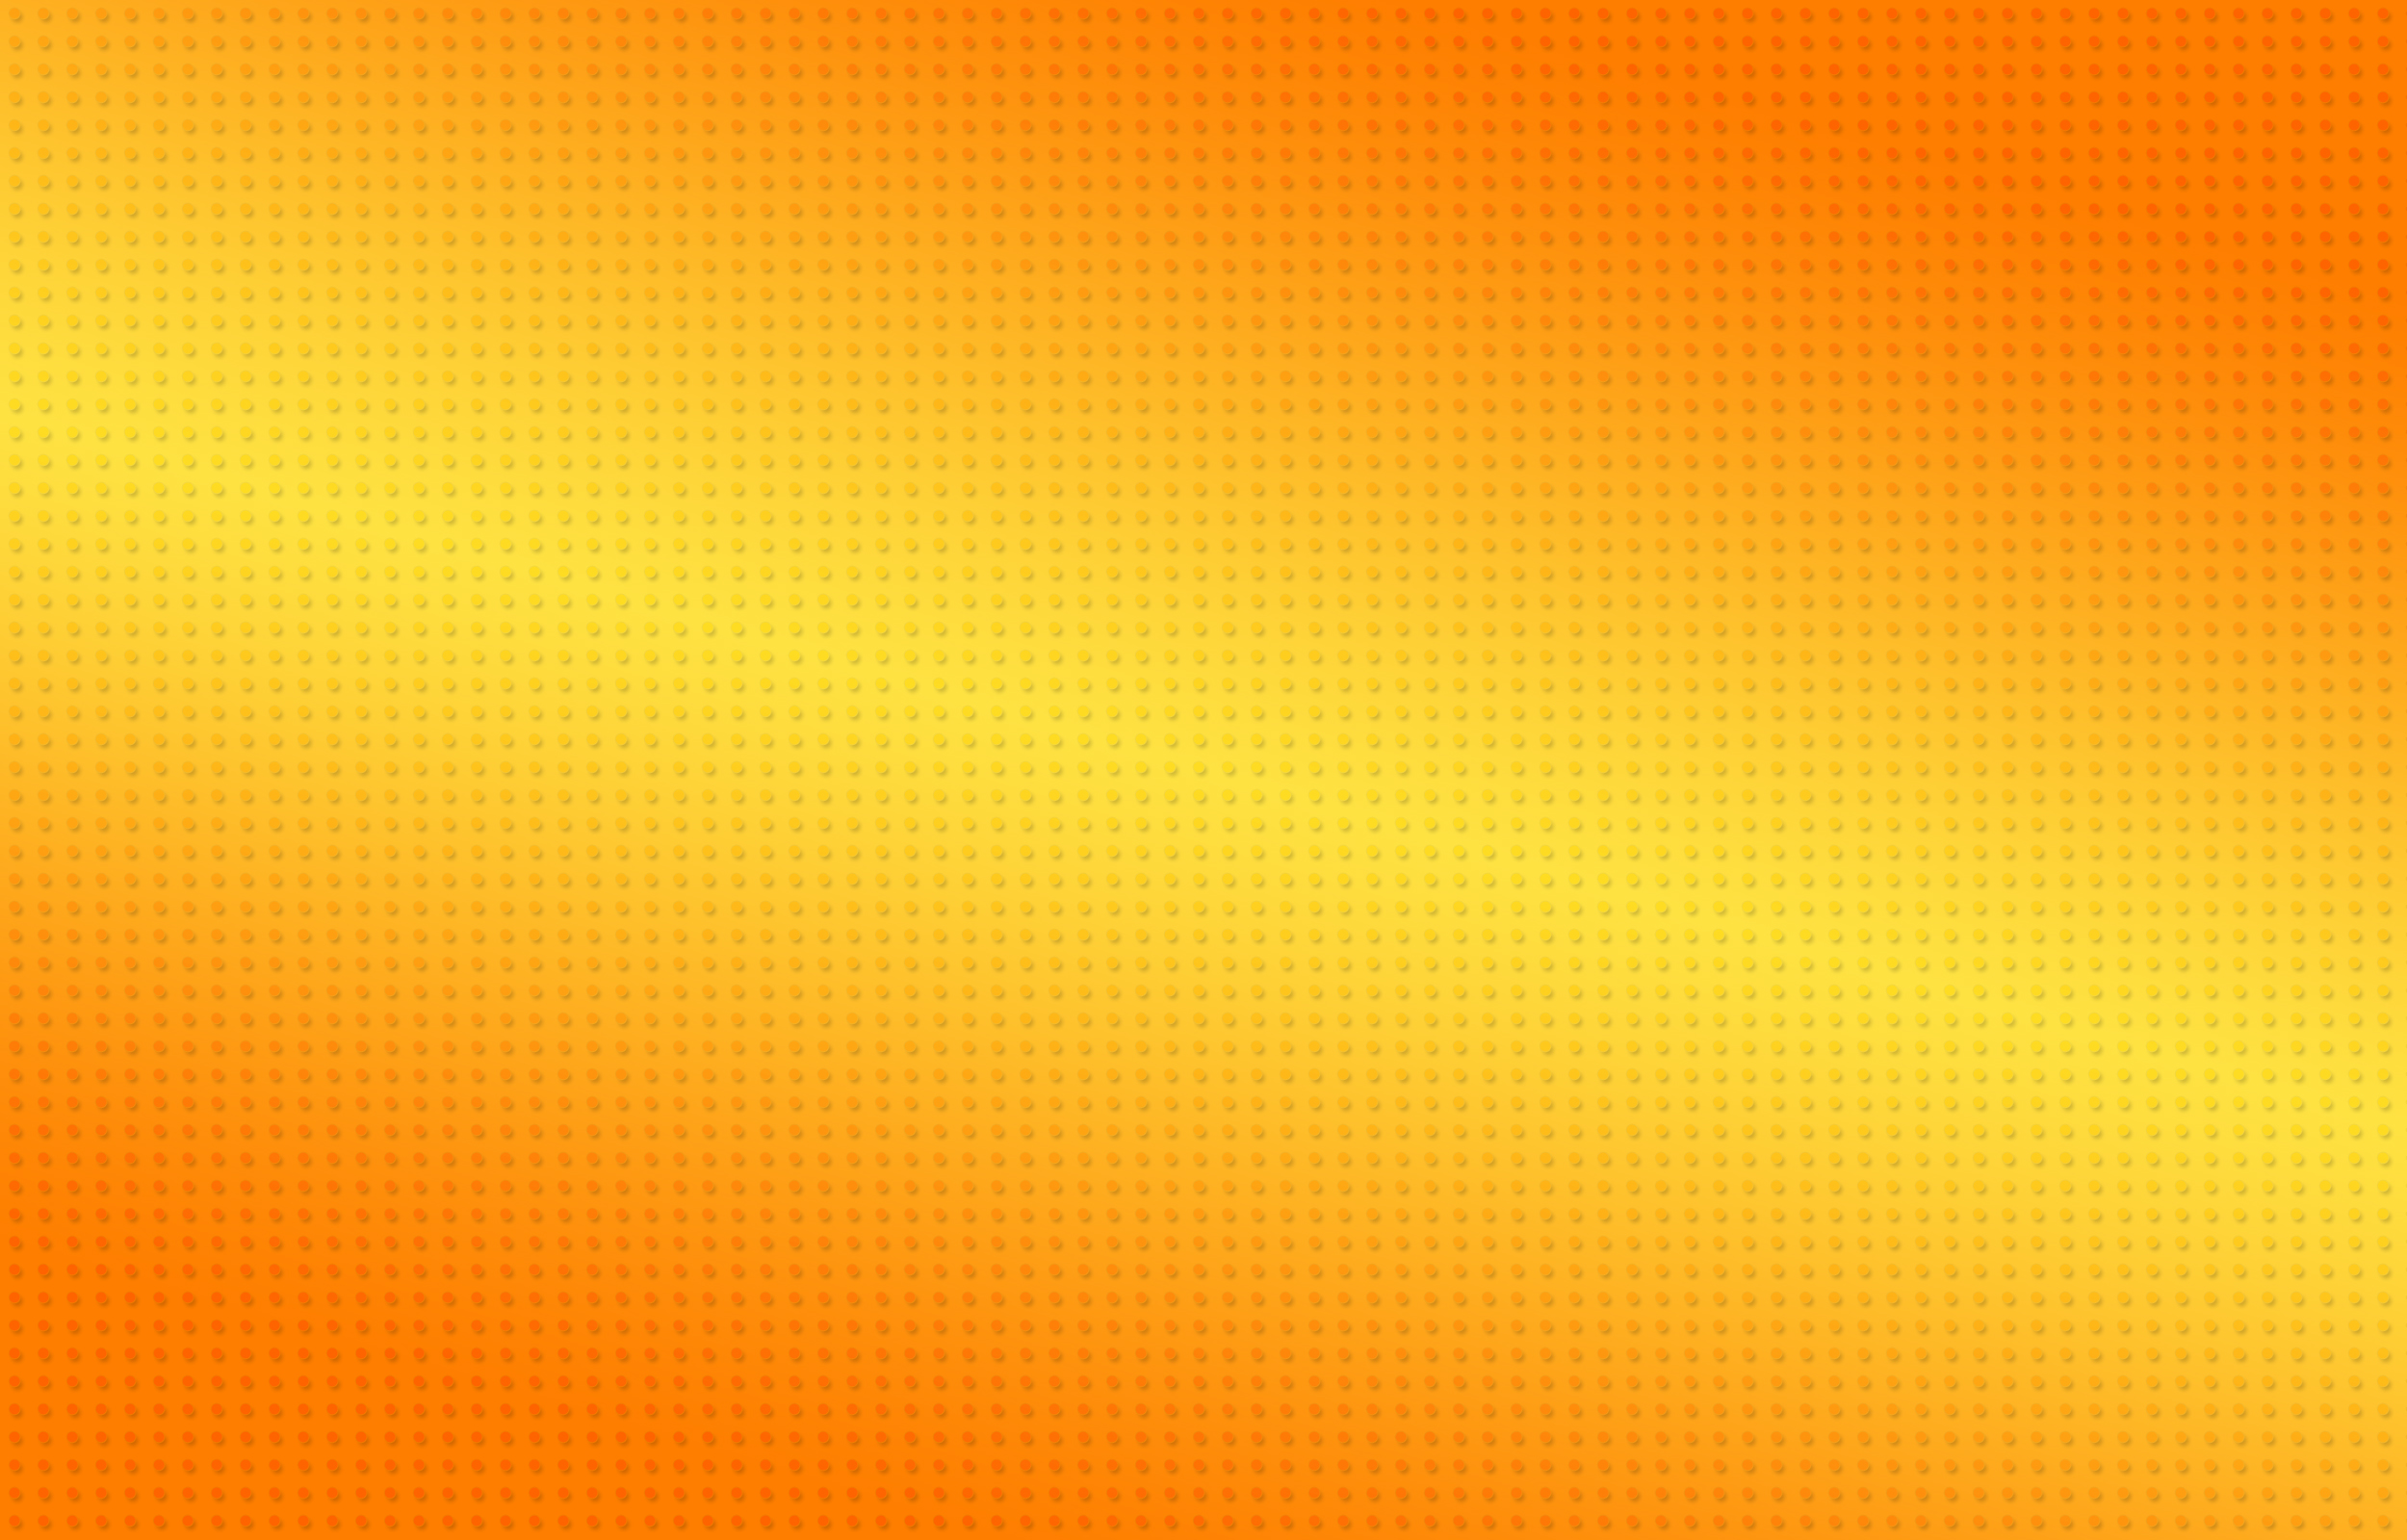 Wallpaper Orange